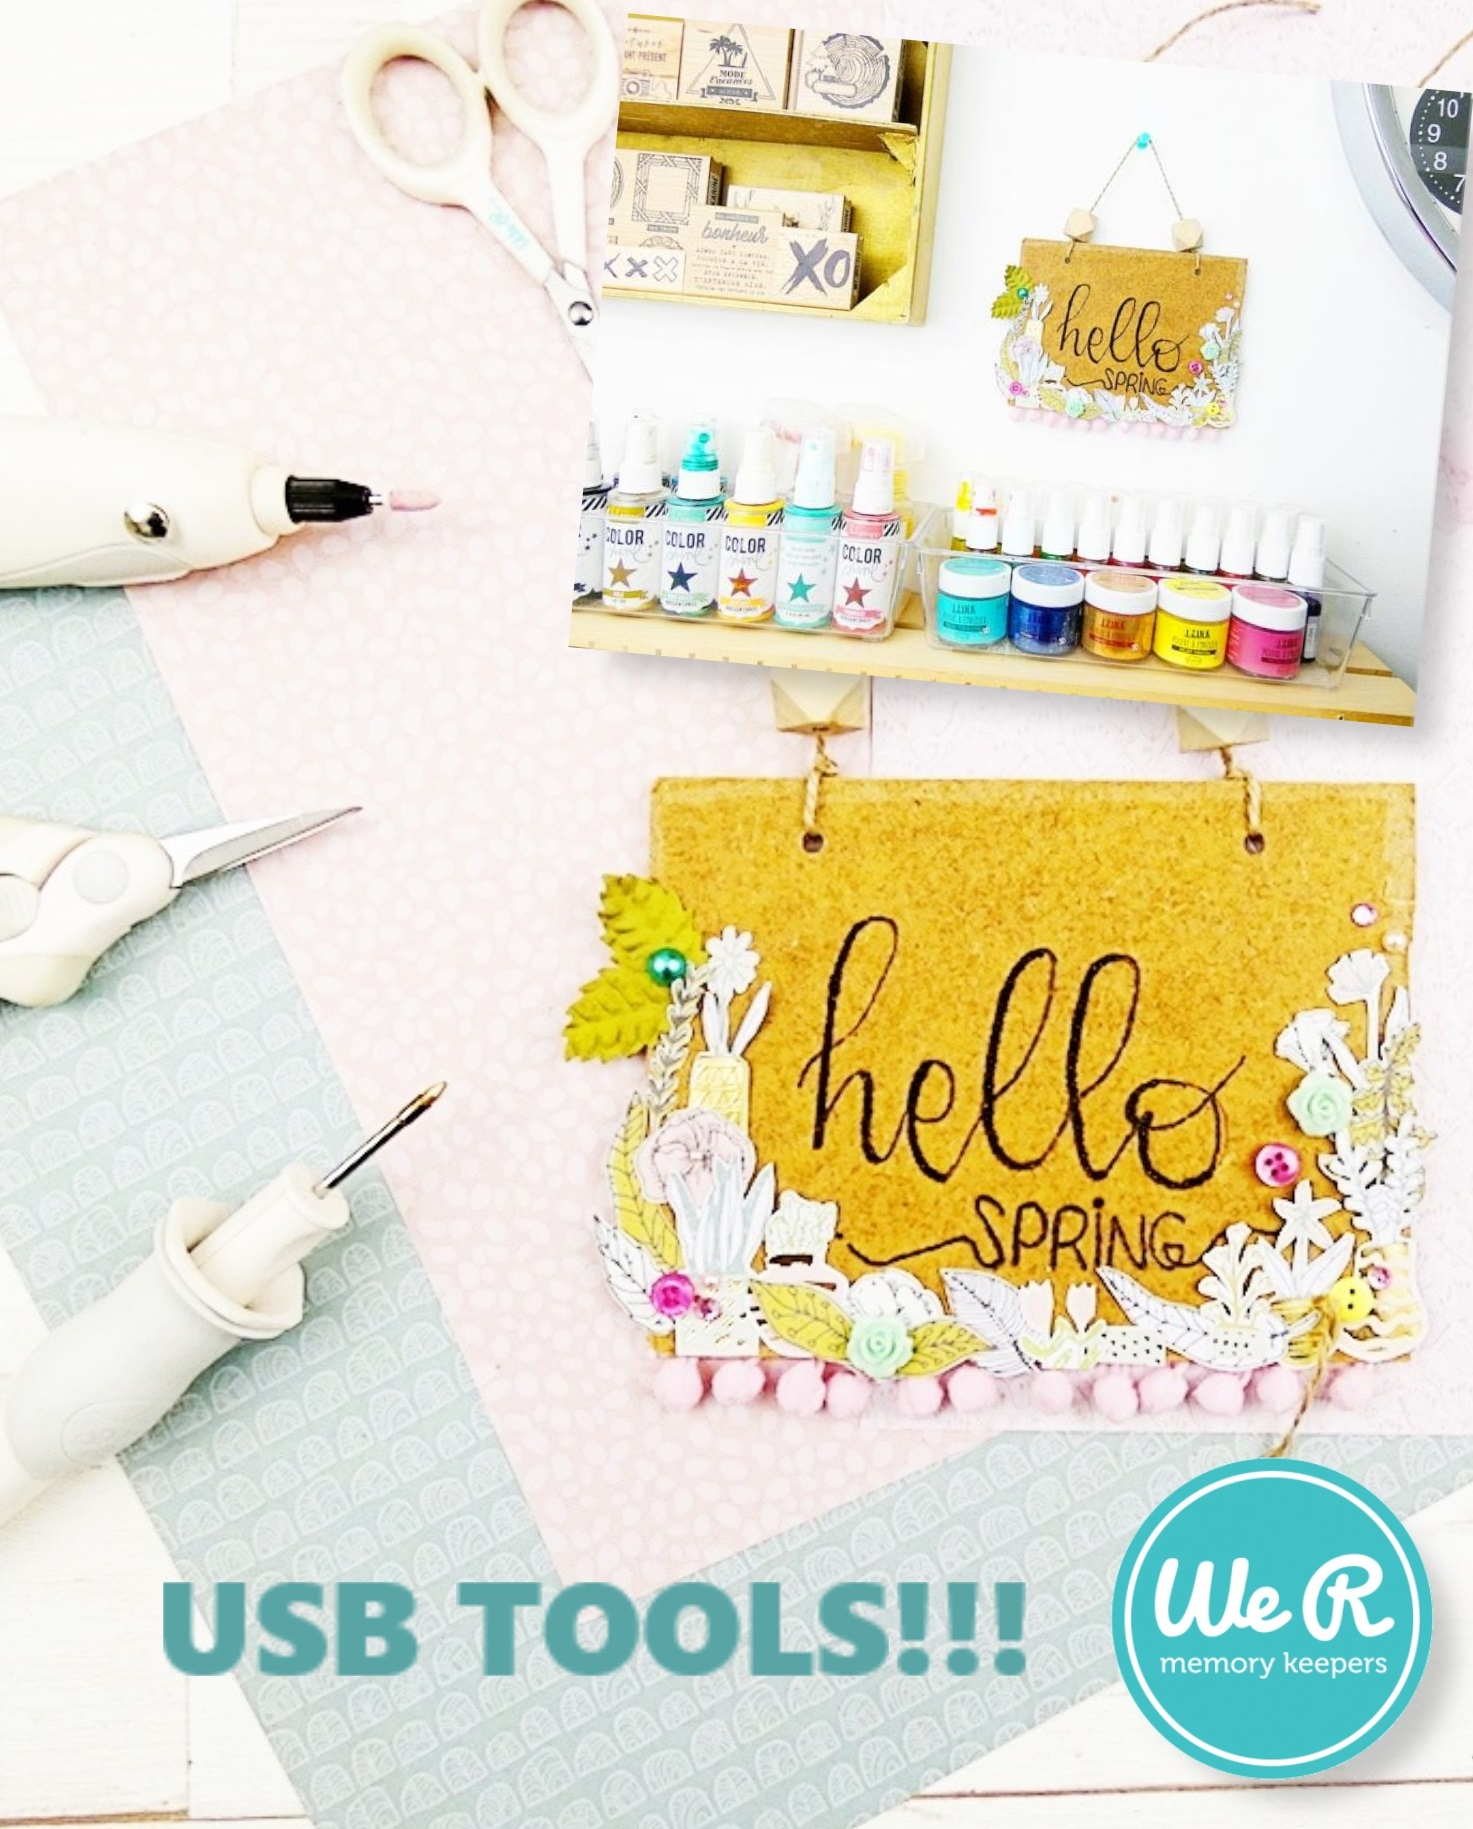 USB Tools We R Memory Keepers